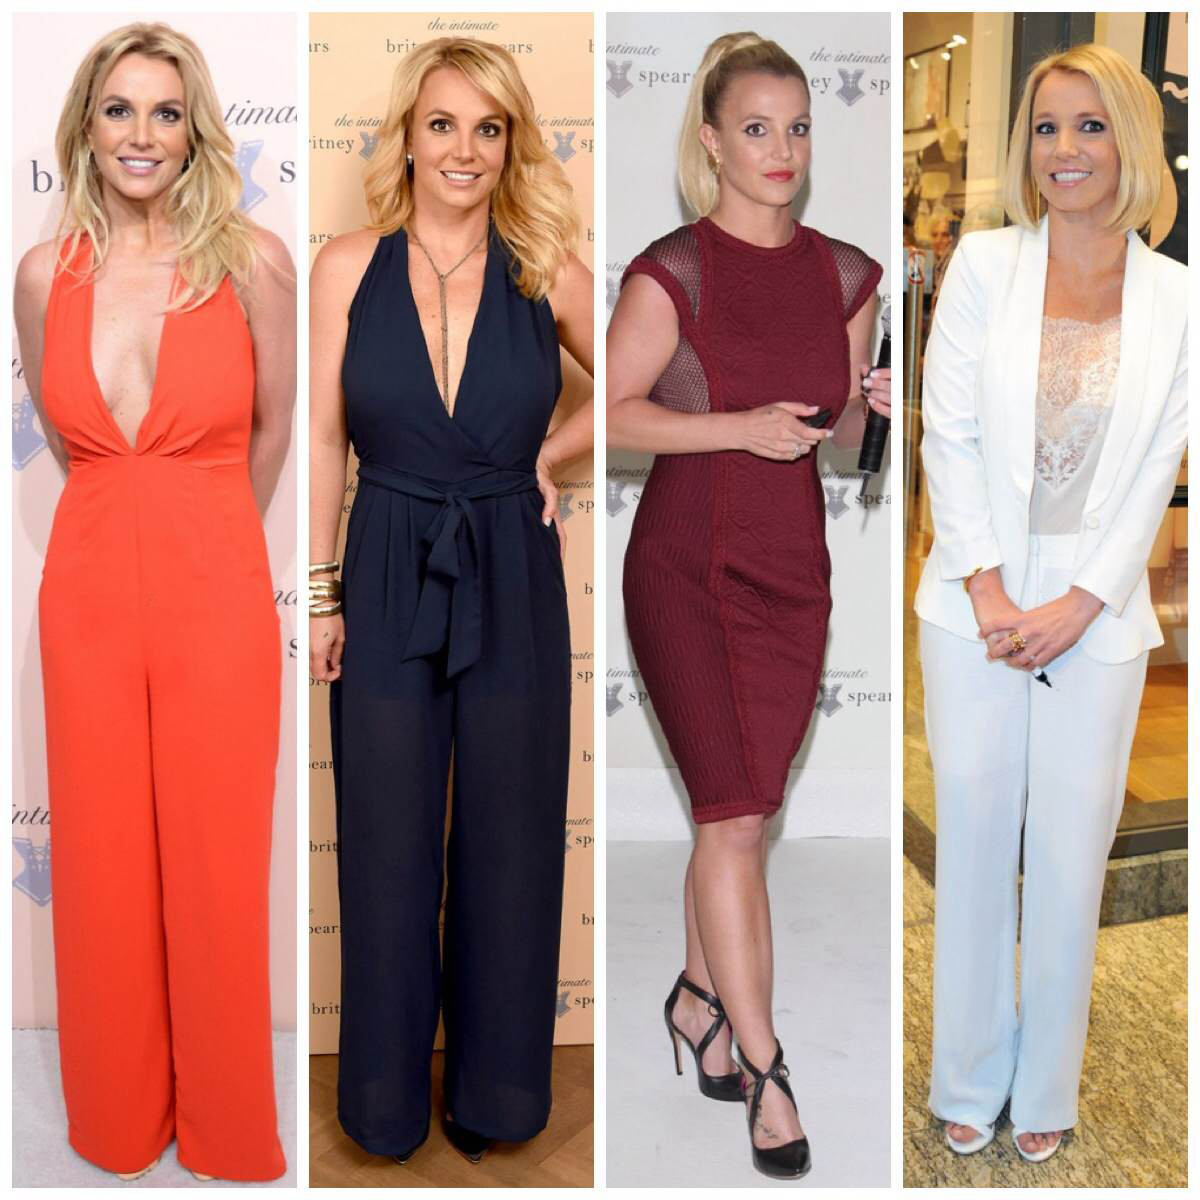 Britney-Spears-Launches-Underwear-Line-I